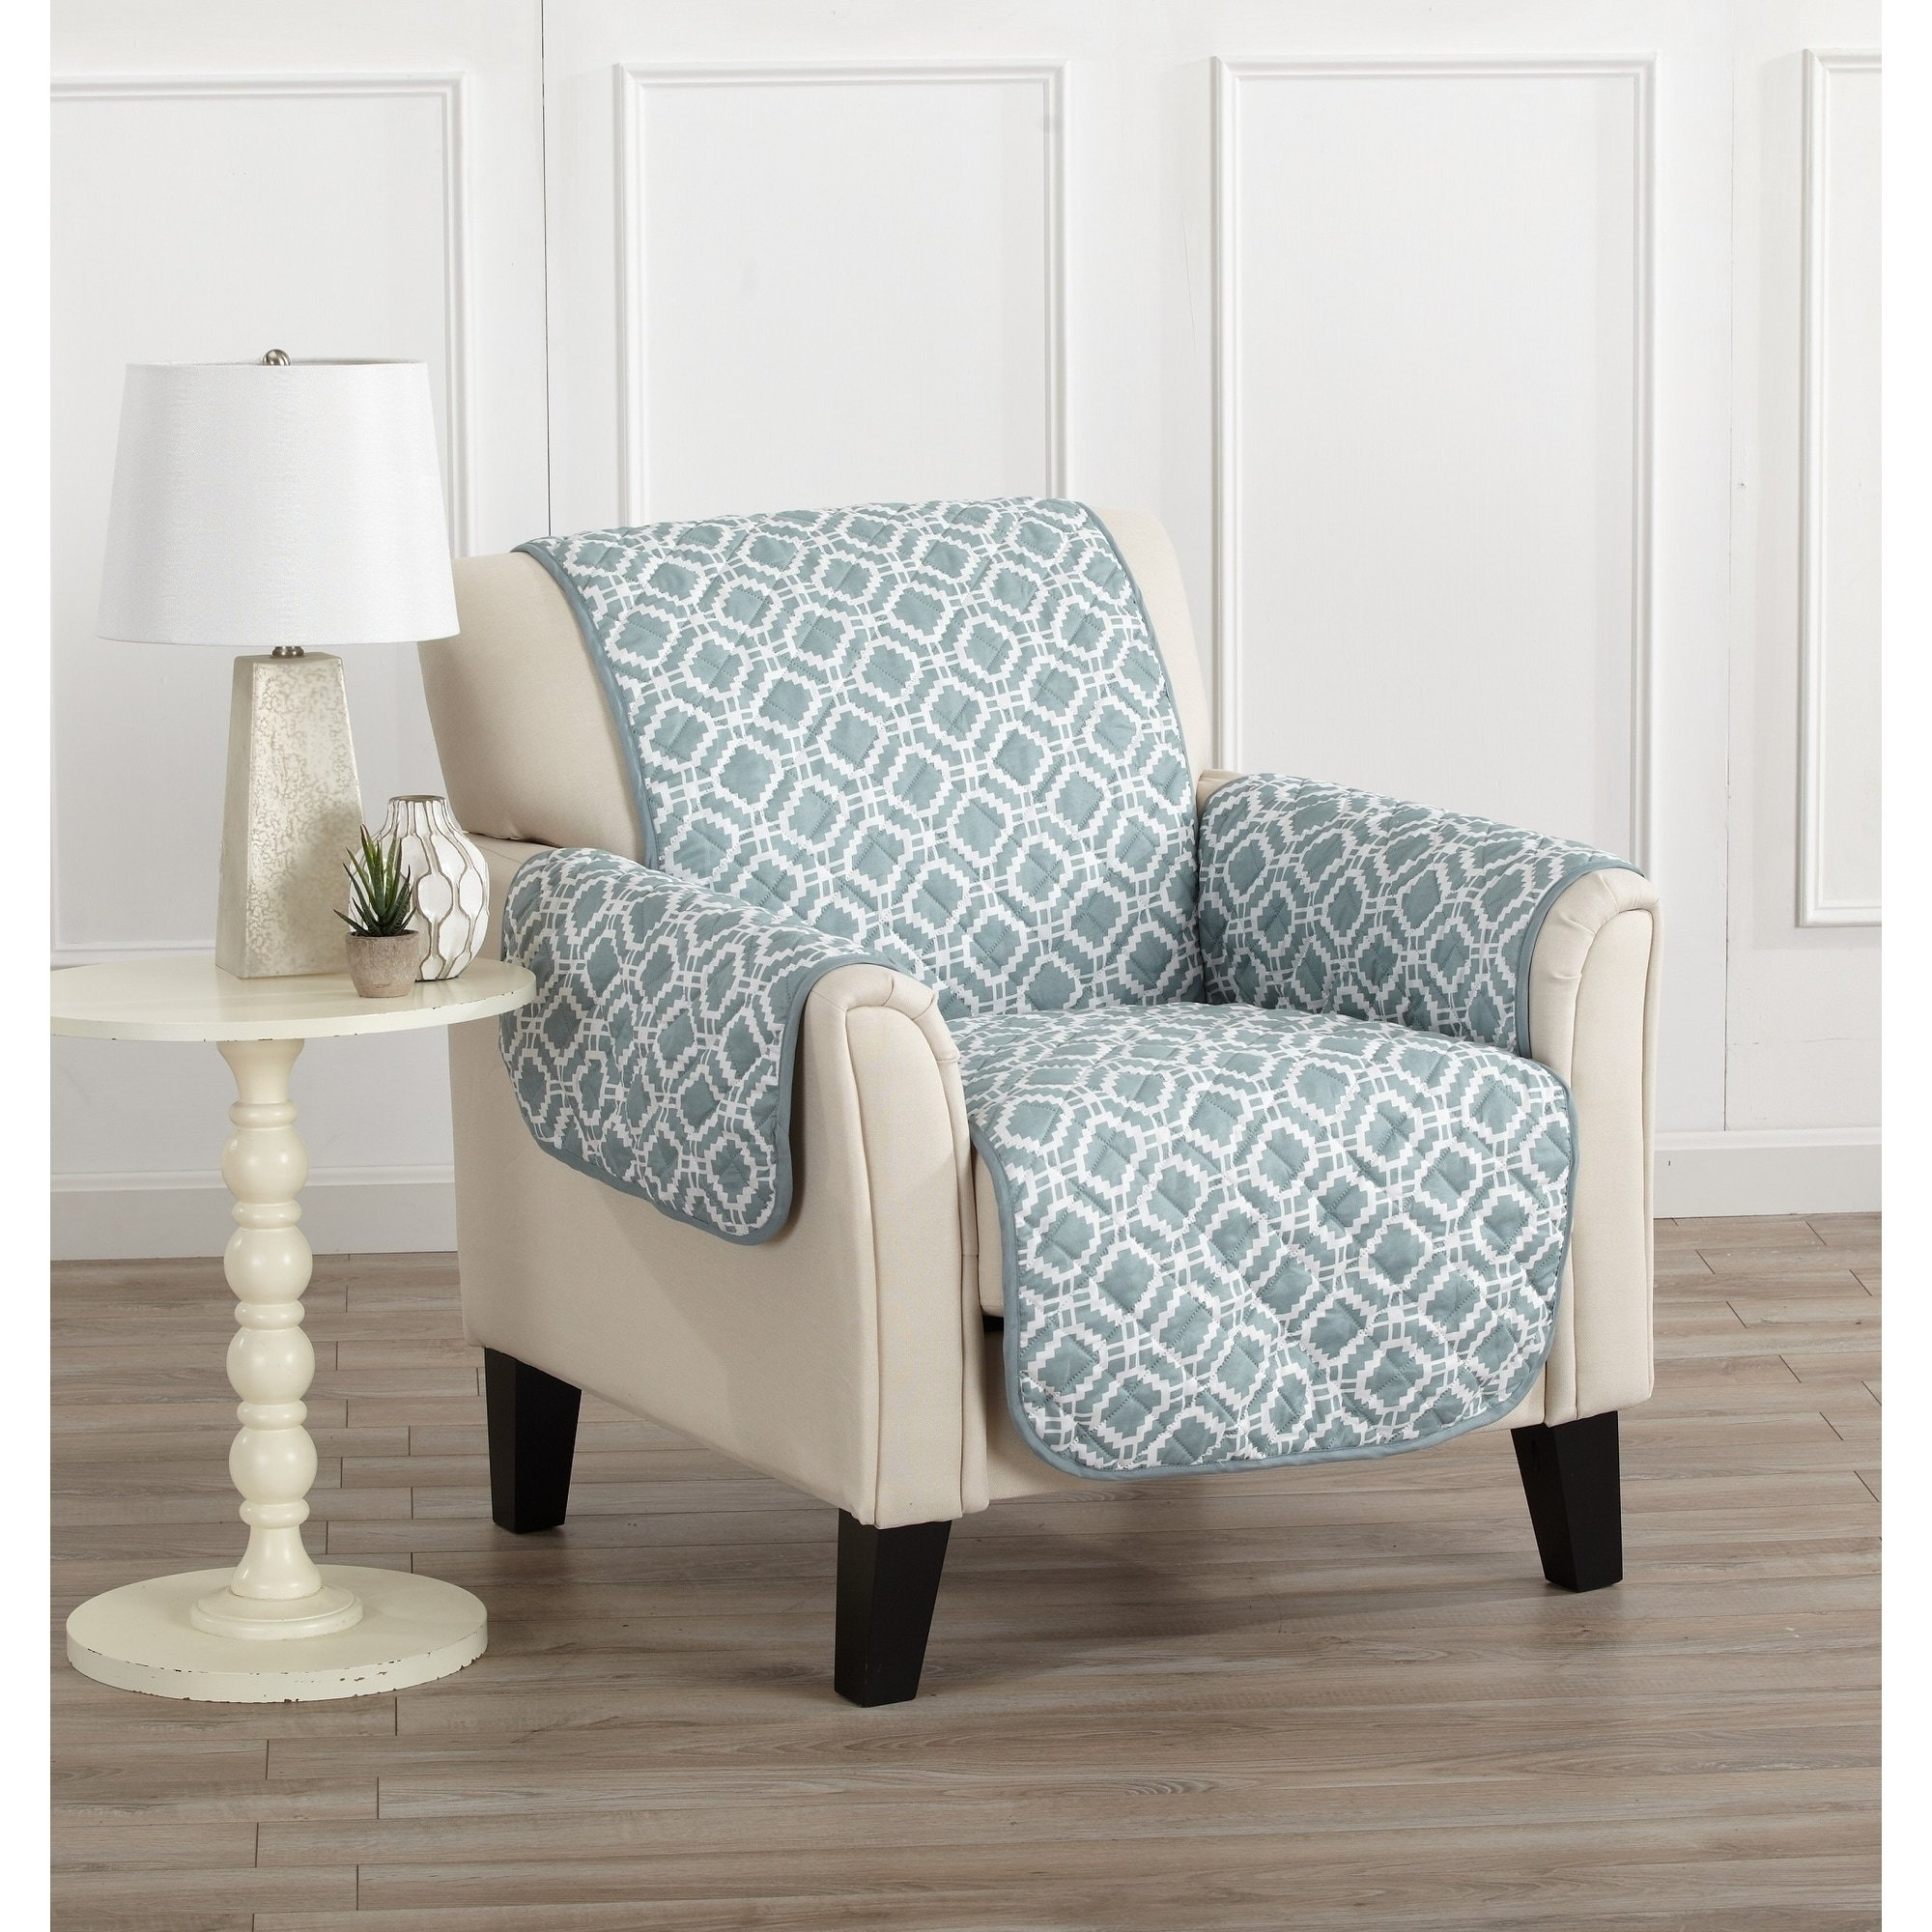 MN 1 Piece Silver Grey Geometric Chair Protector, Gray Medallion Diamond Shape Pattern Circle Dot Ikat Jacquard Modern Sleek Trendy Couch Protection Cover Pets Animals Covers, Polyester